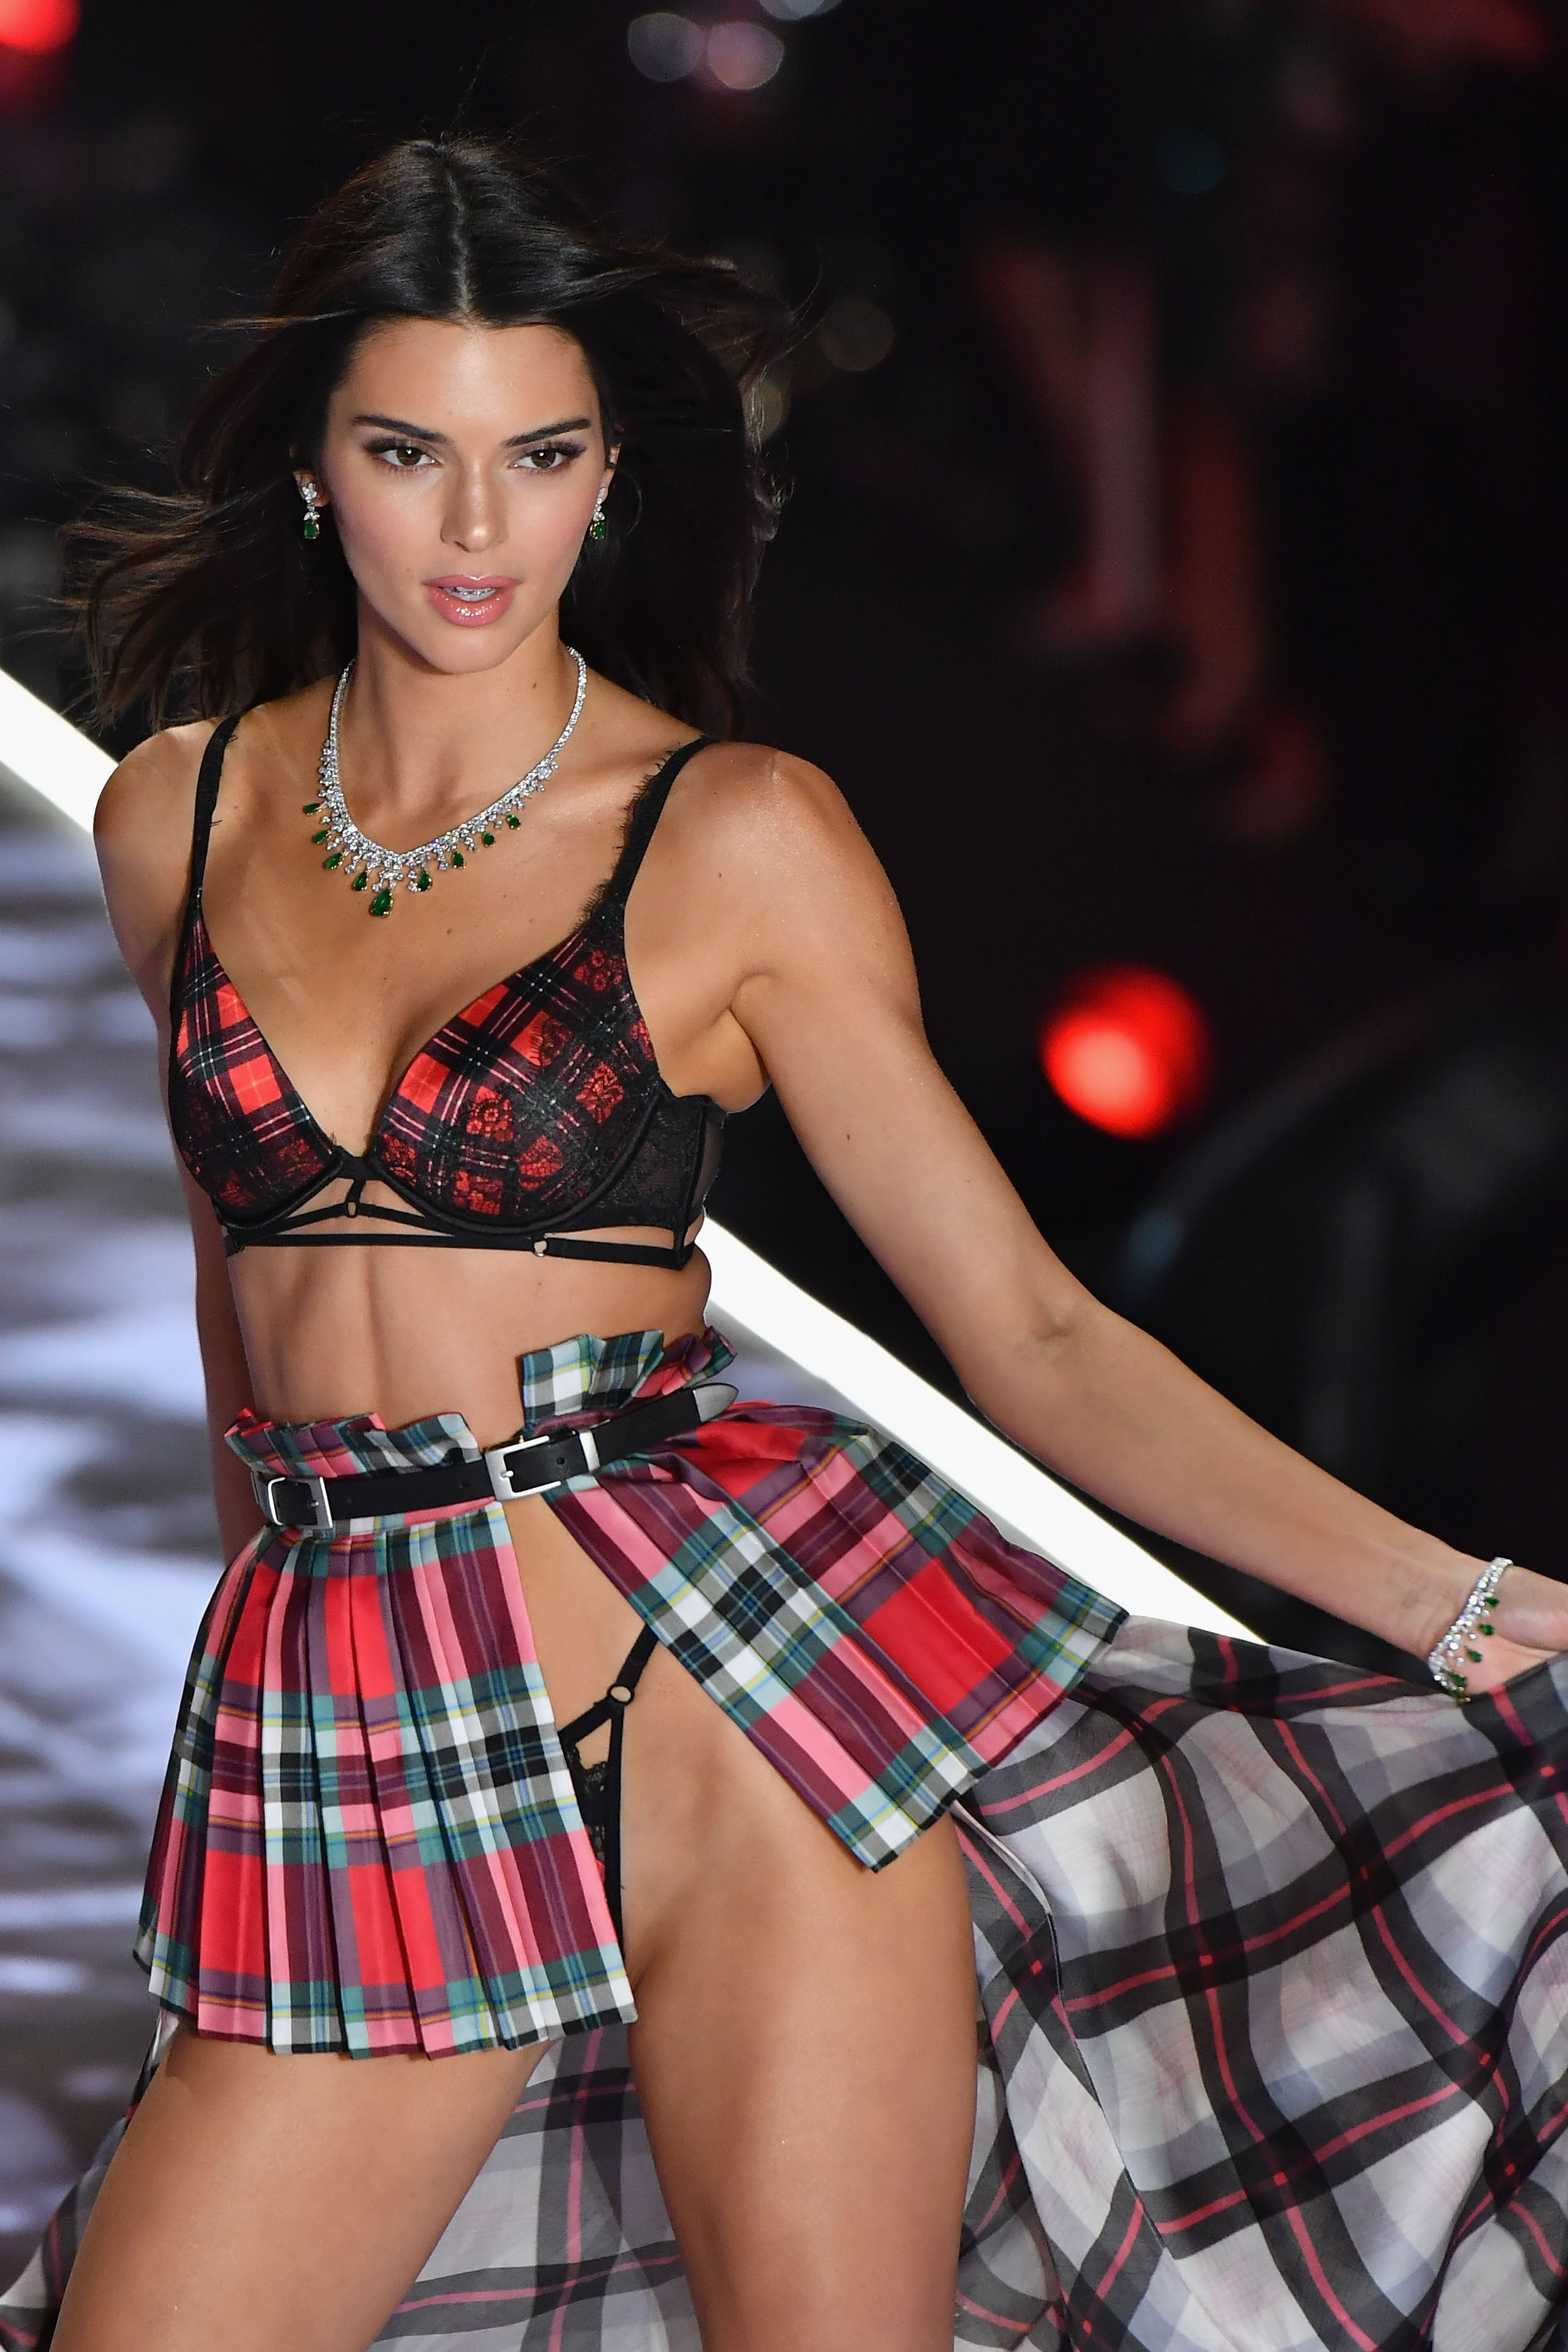 b04d5a1753 Kendall Jenner Rocks Sexy Scottish-Inspired Look at Victoria s Secret  Fashion Show  Pics!